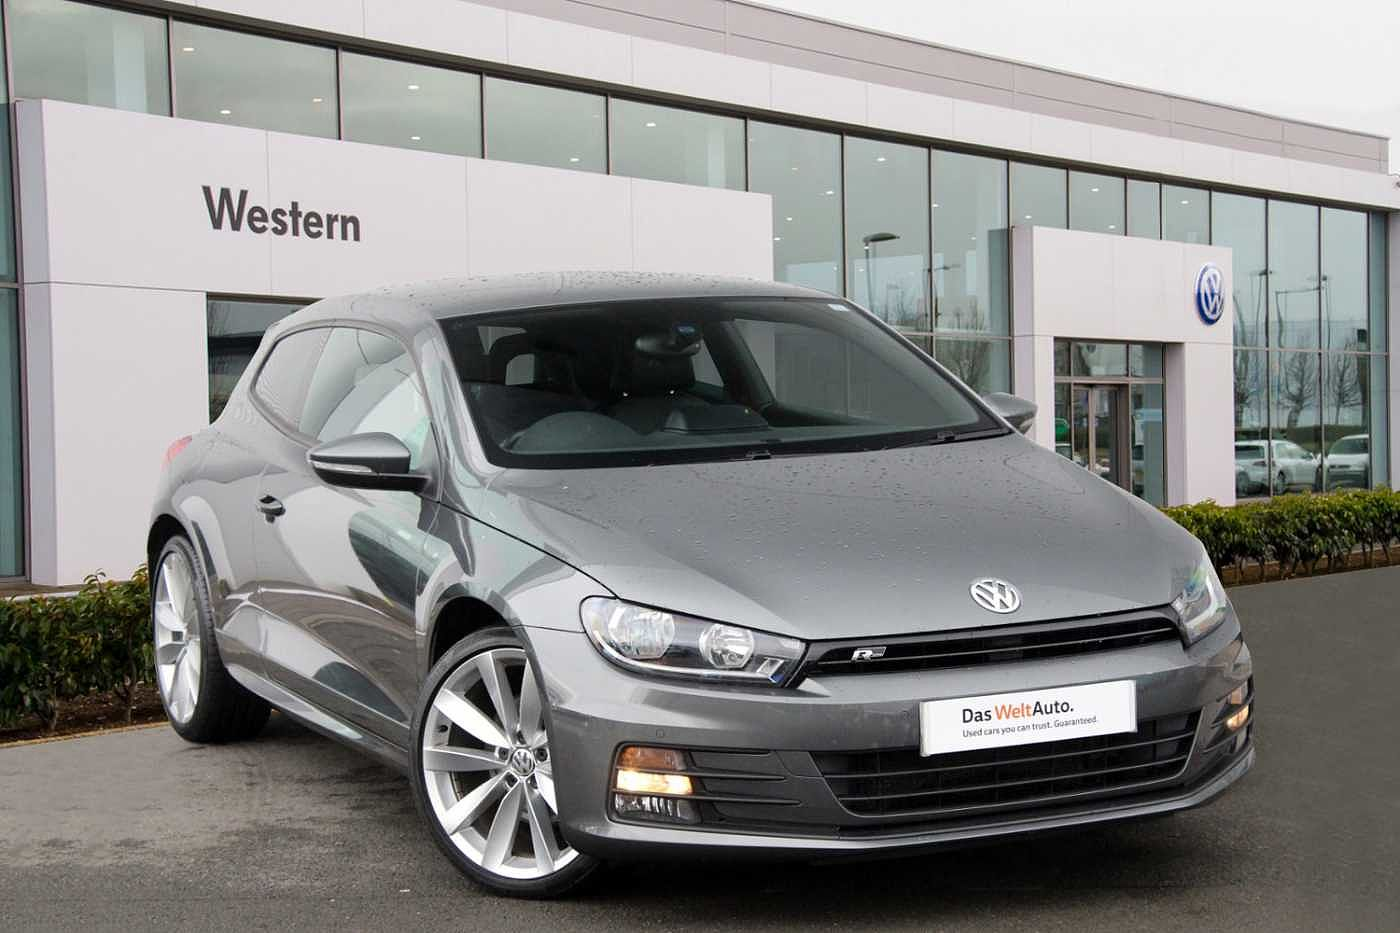 Volkswagen Scirocco Coupe for sale